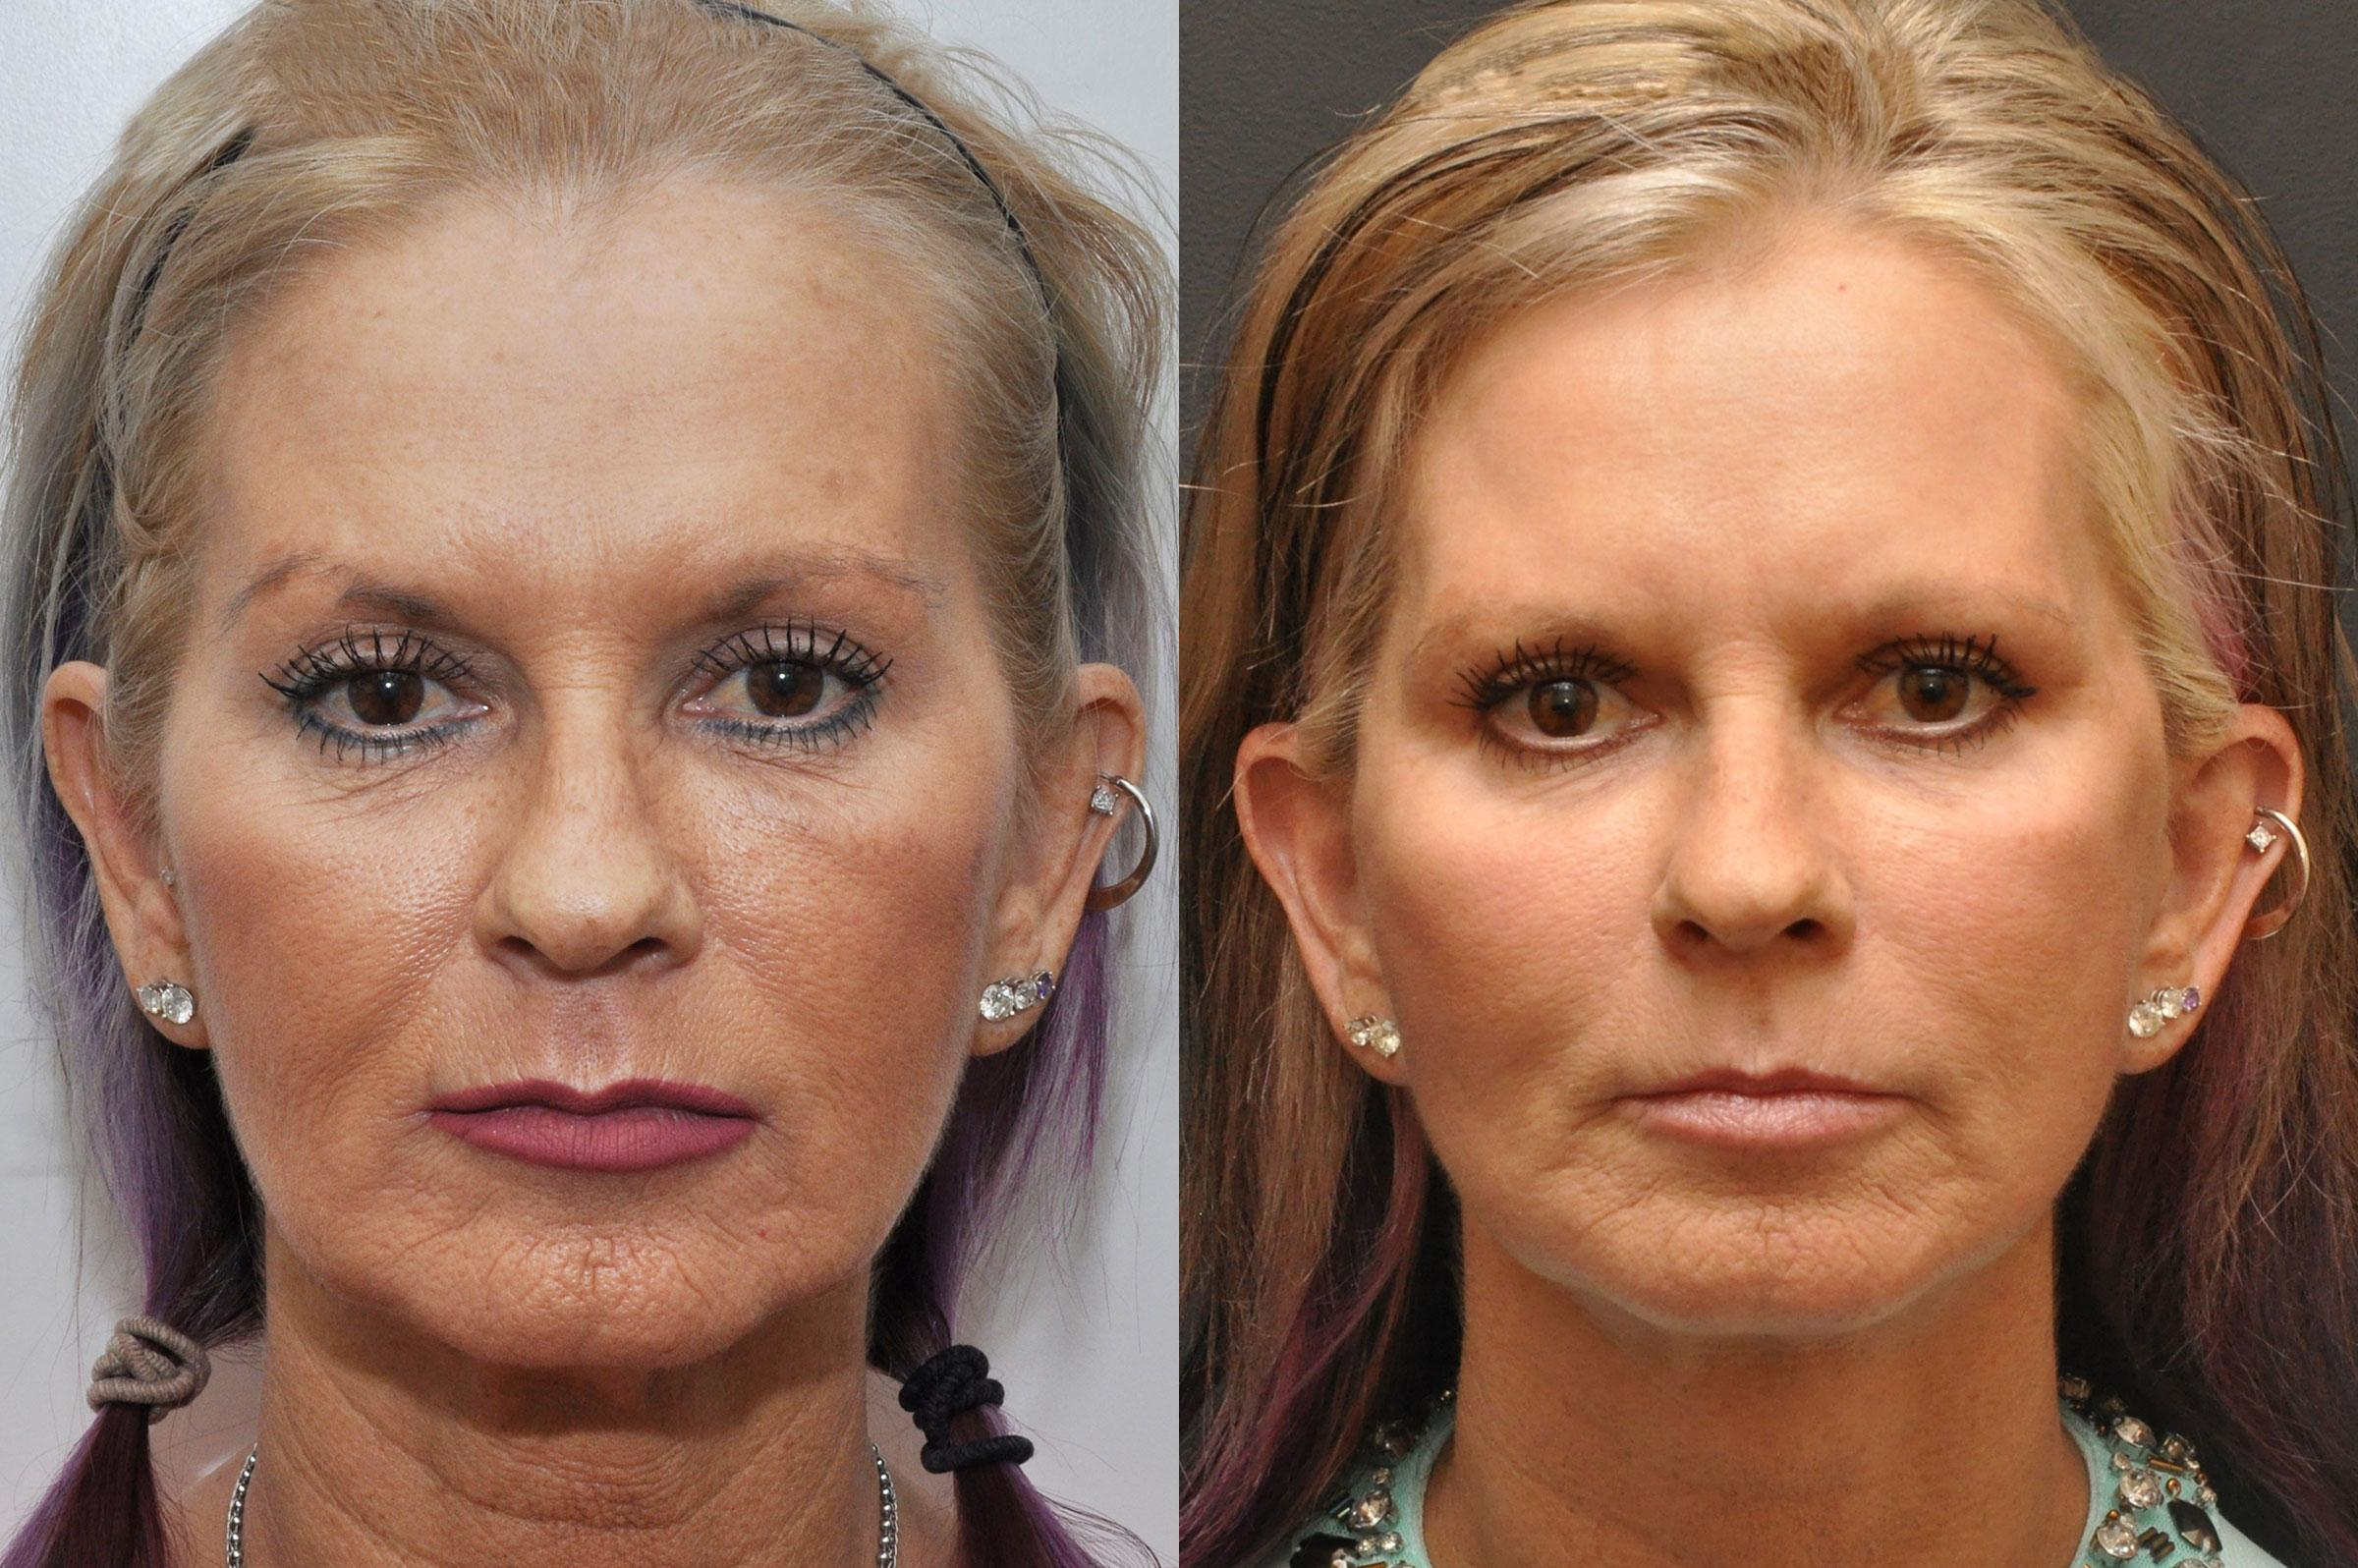 facial plastic surgery before and after photo - 1